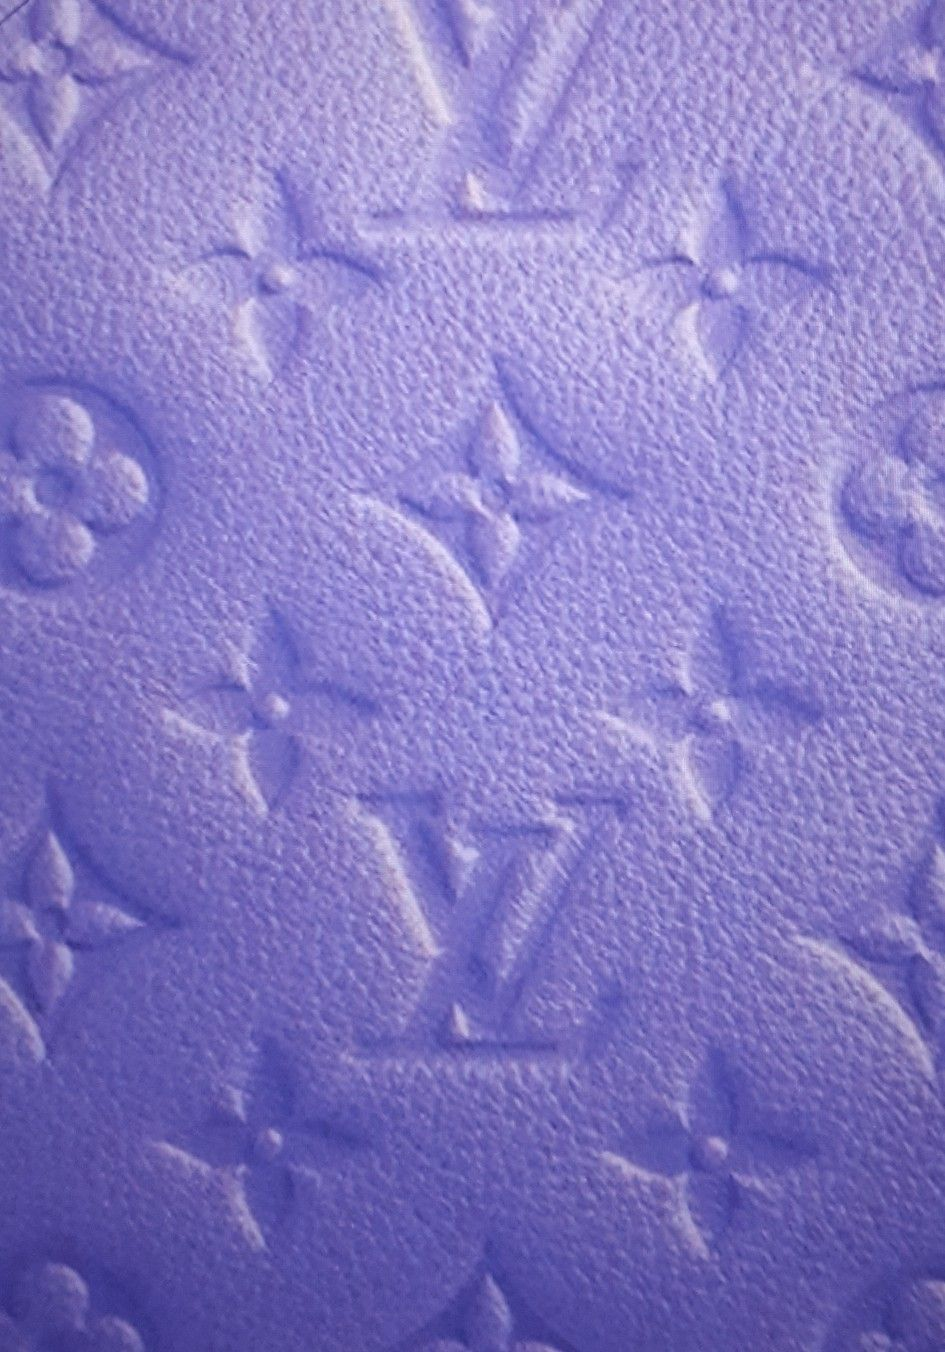 Luis Vuitton Background In 2020 Beach Wall Collage Louis Vuitton Iphone Wallpaper Purple Wallpaper